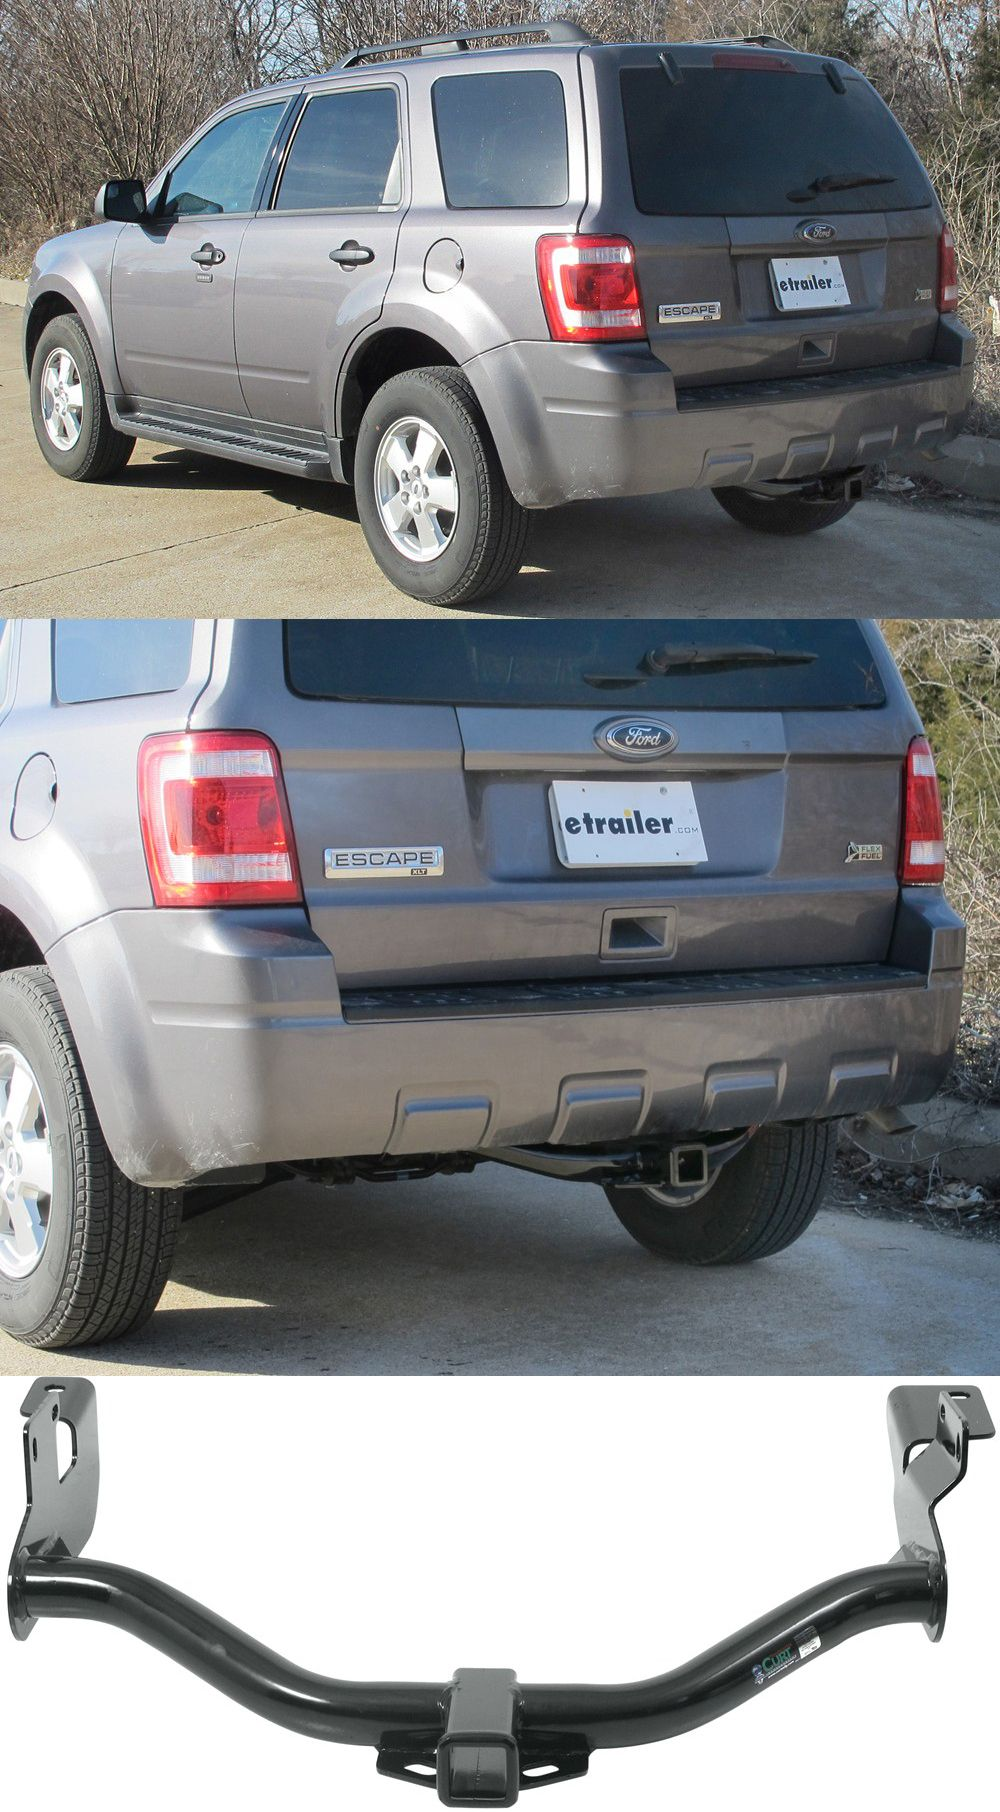 Curt Trailer Hitch Features Bolt On Installation And Is Custom Fit For The Ford Escape Attach A Cargo Carrier For Extra Camping And Hiking Gear